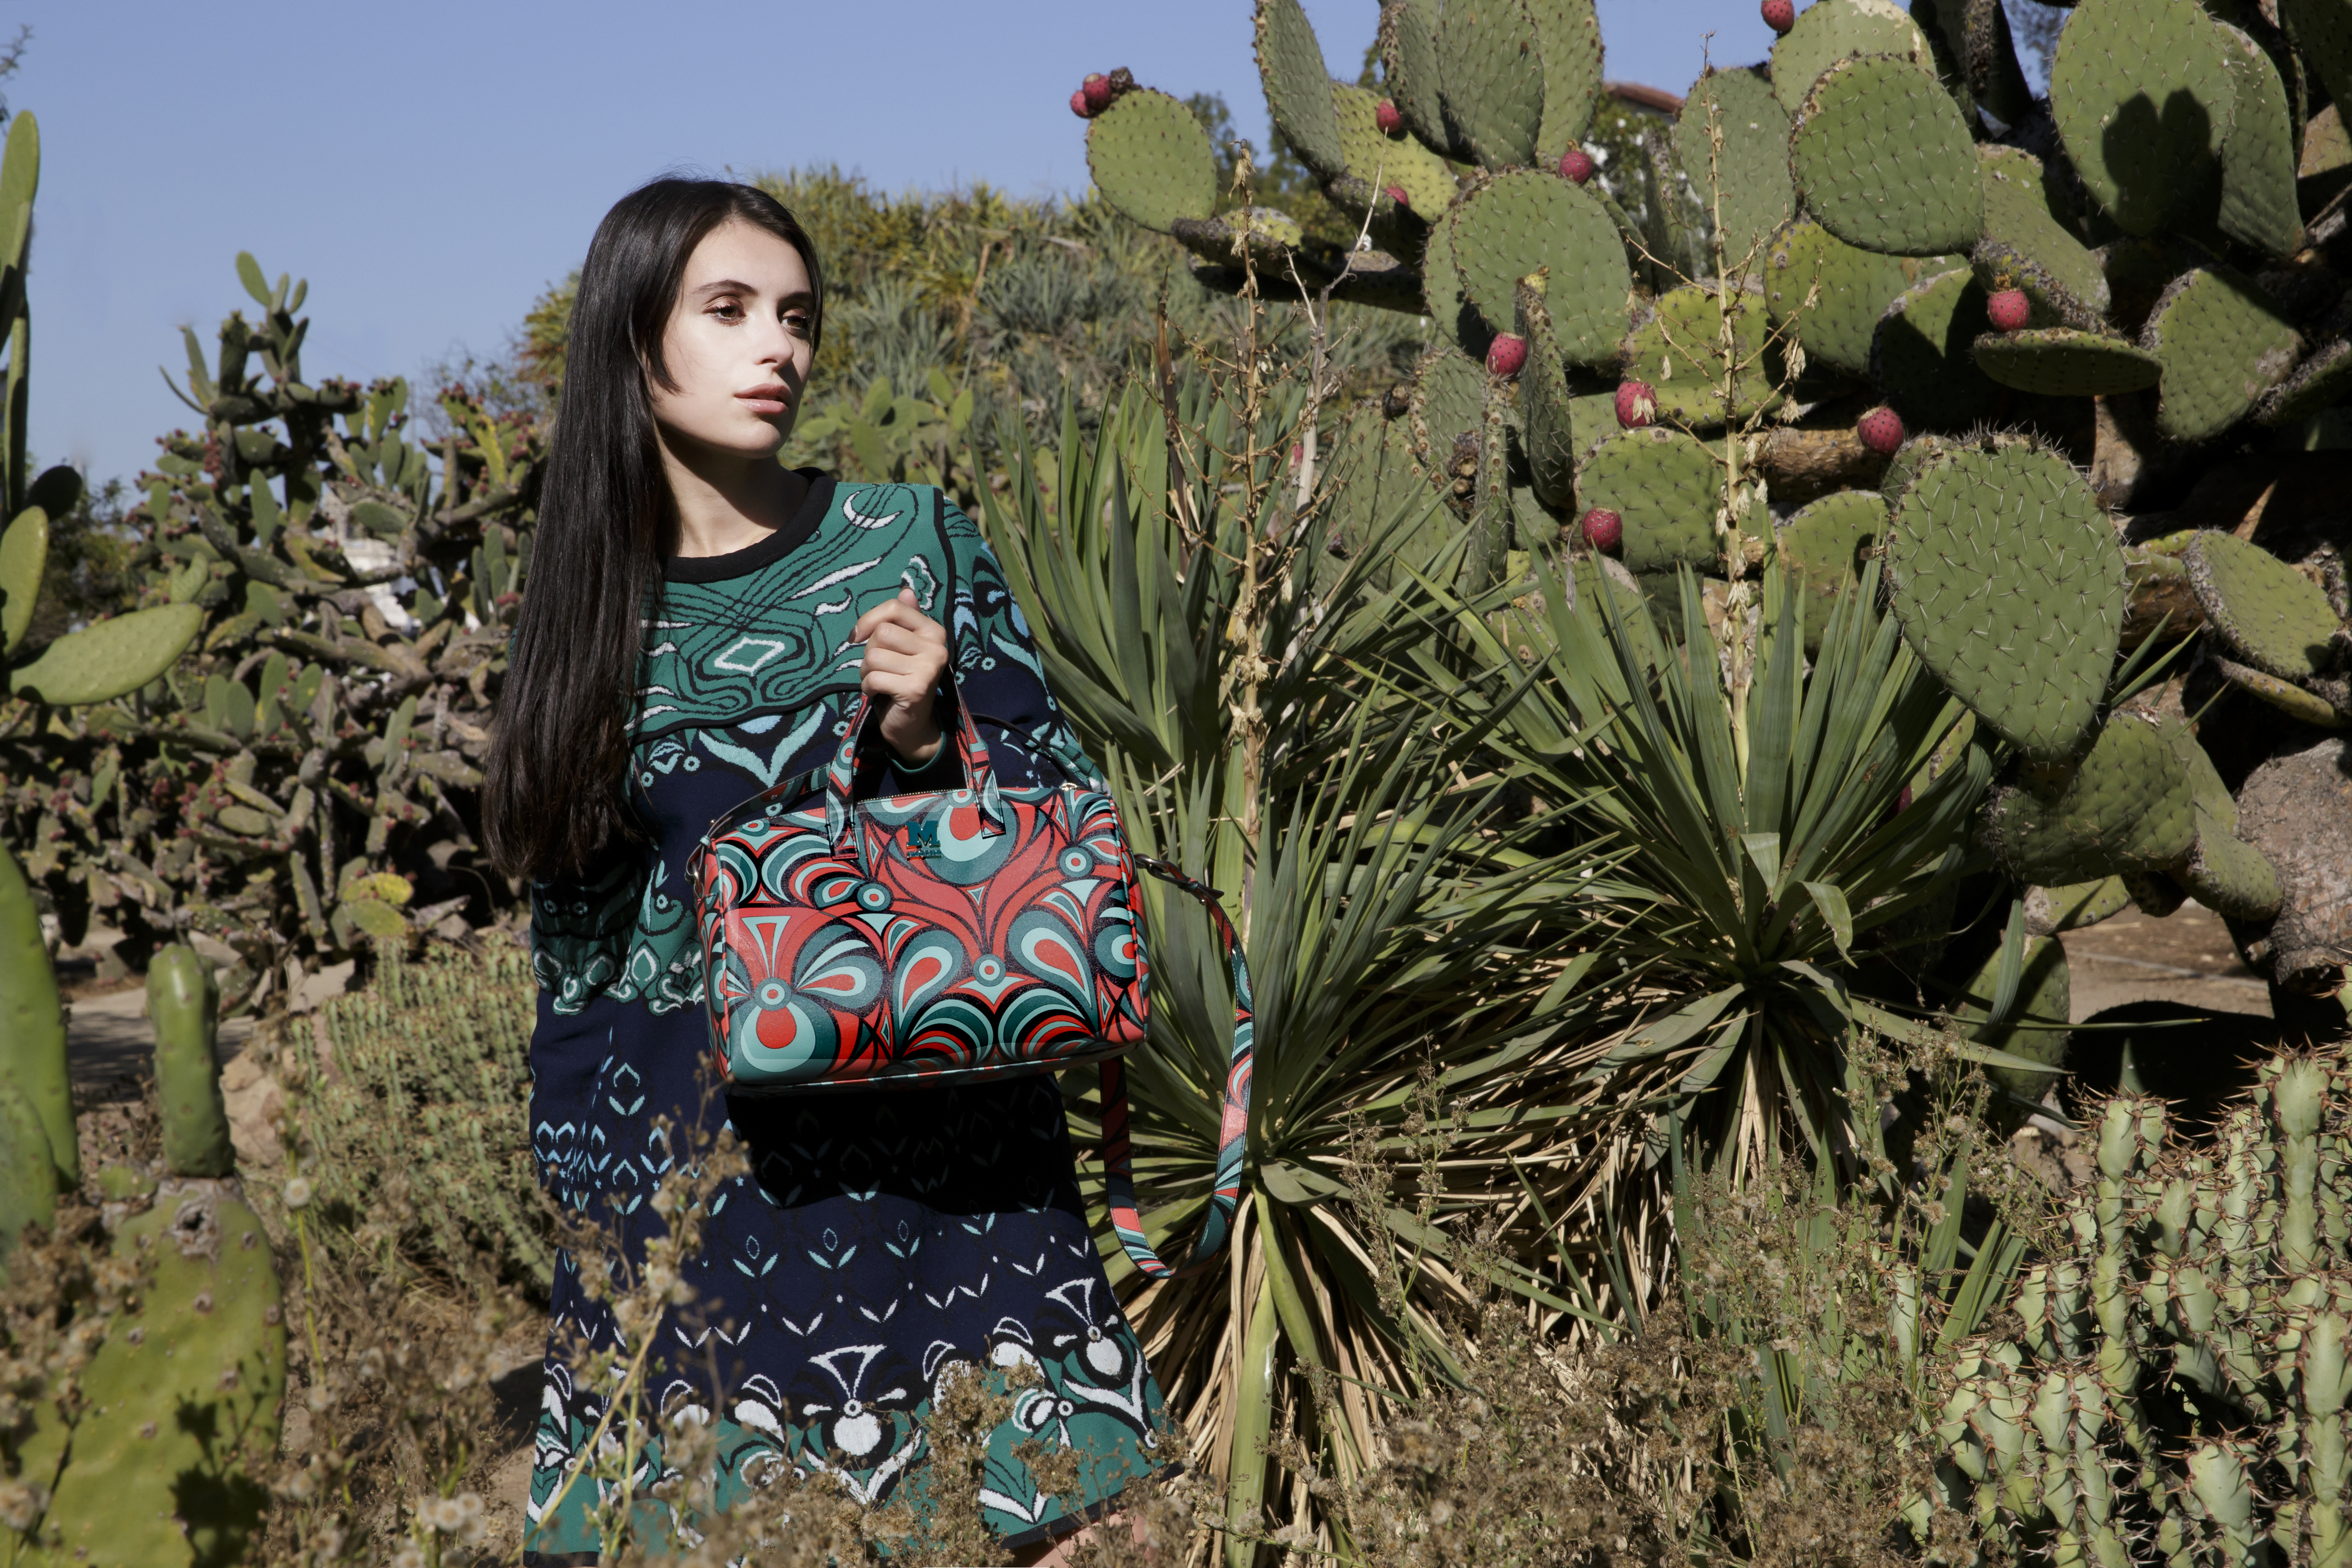 Actress and influencer Marta Pozzan in M Missoni winter flowers prints.